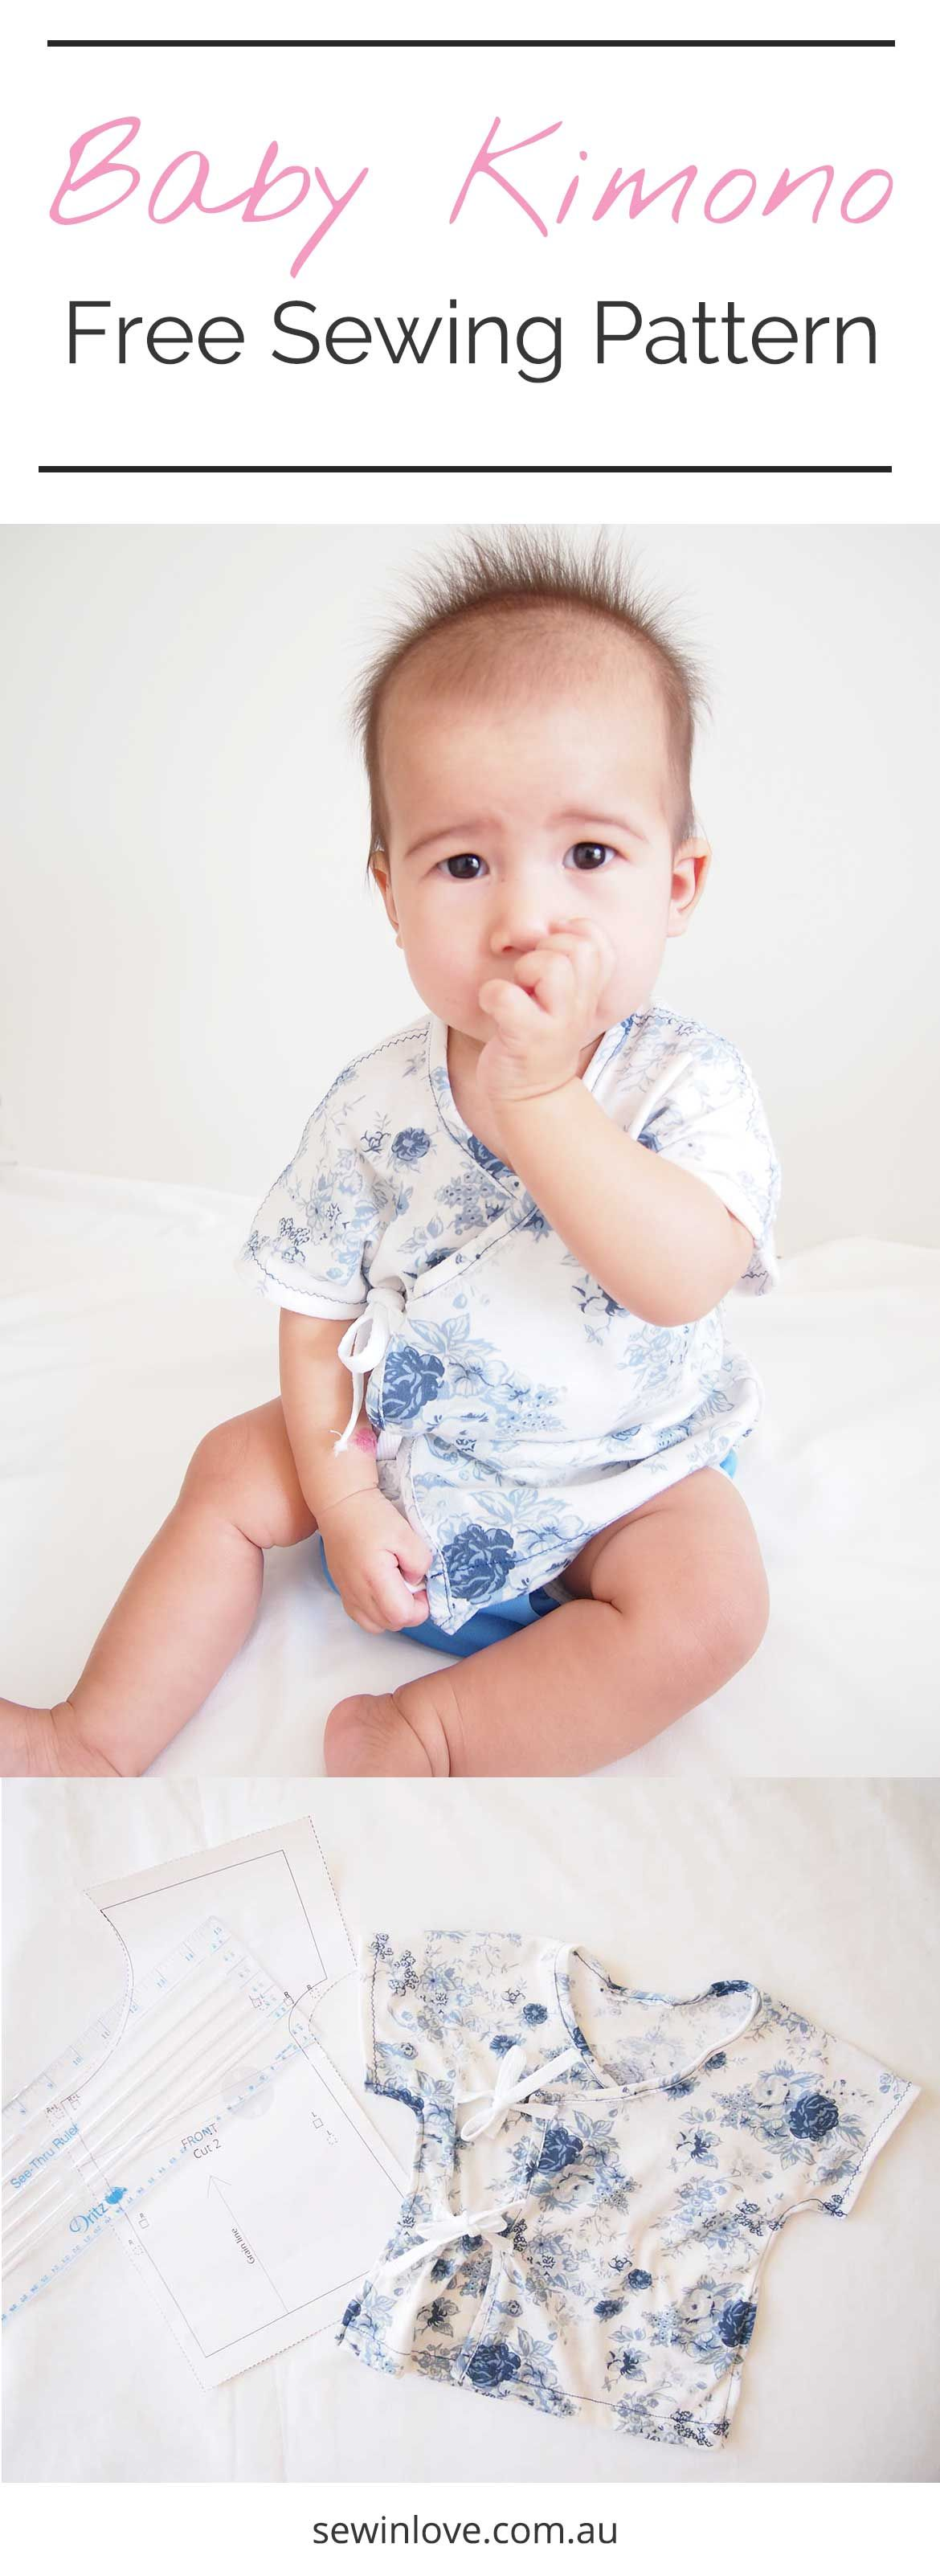 Free Sewing Pattern: Soft and Cosy Baby Kimono | Bebes - Costura ...